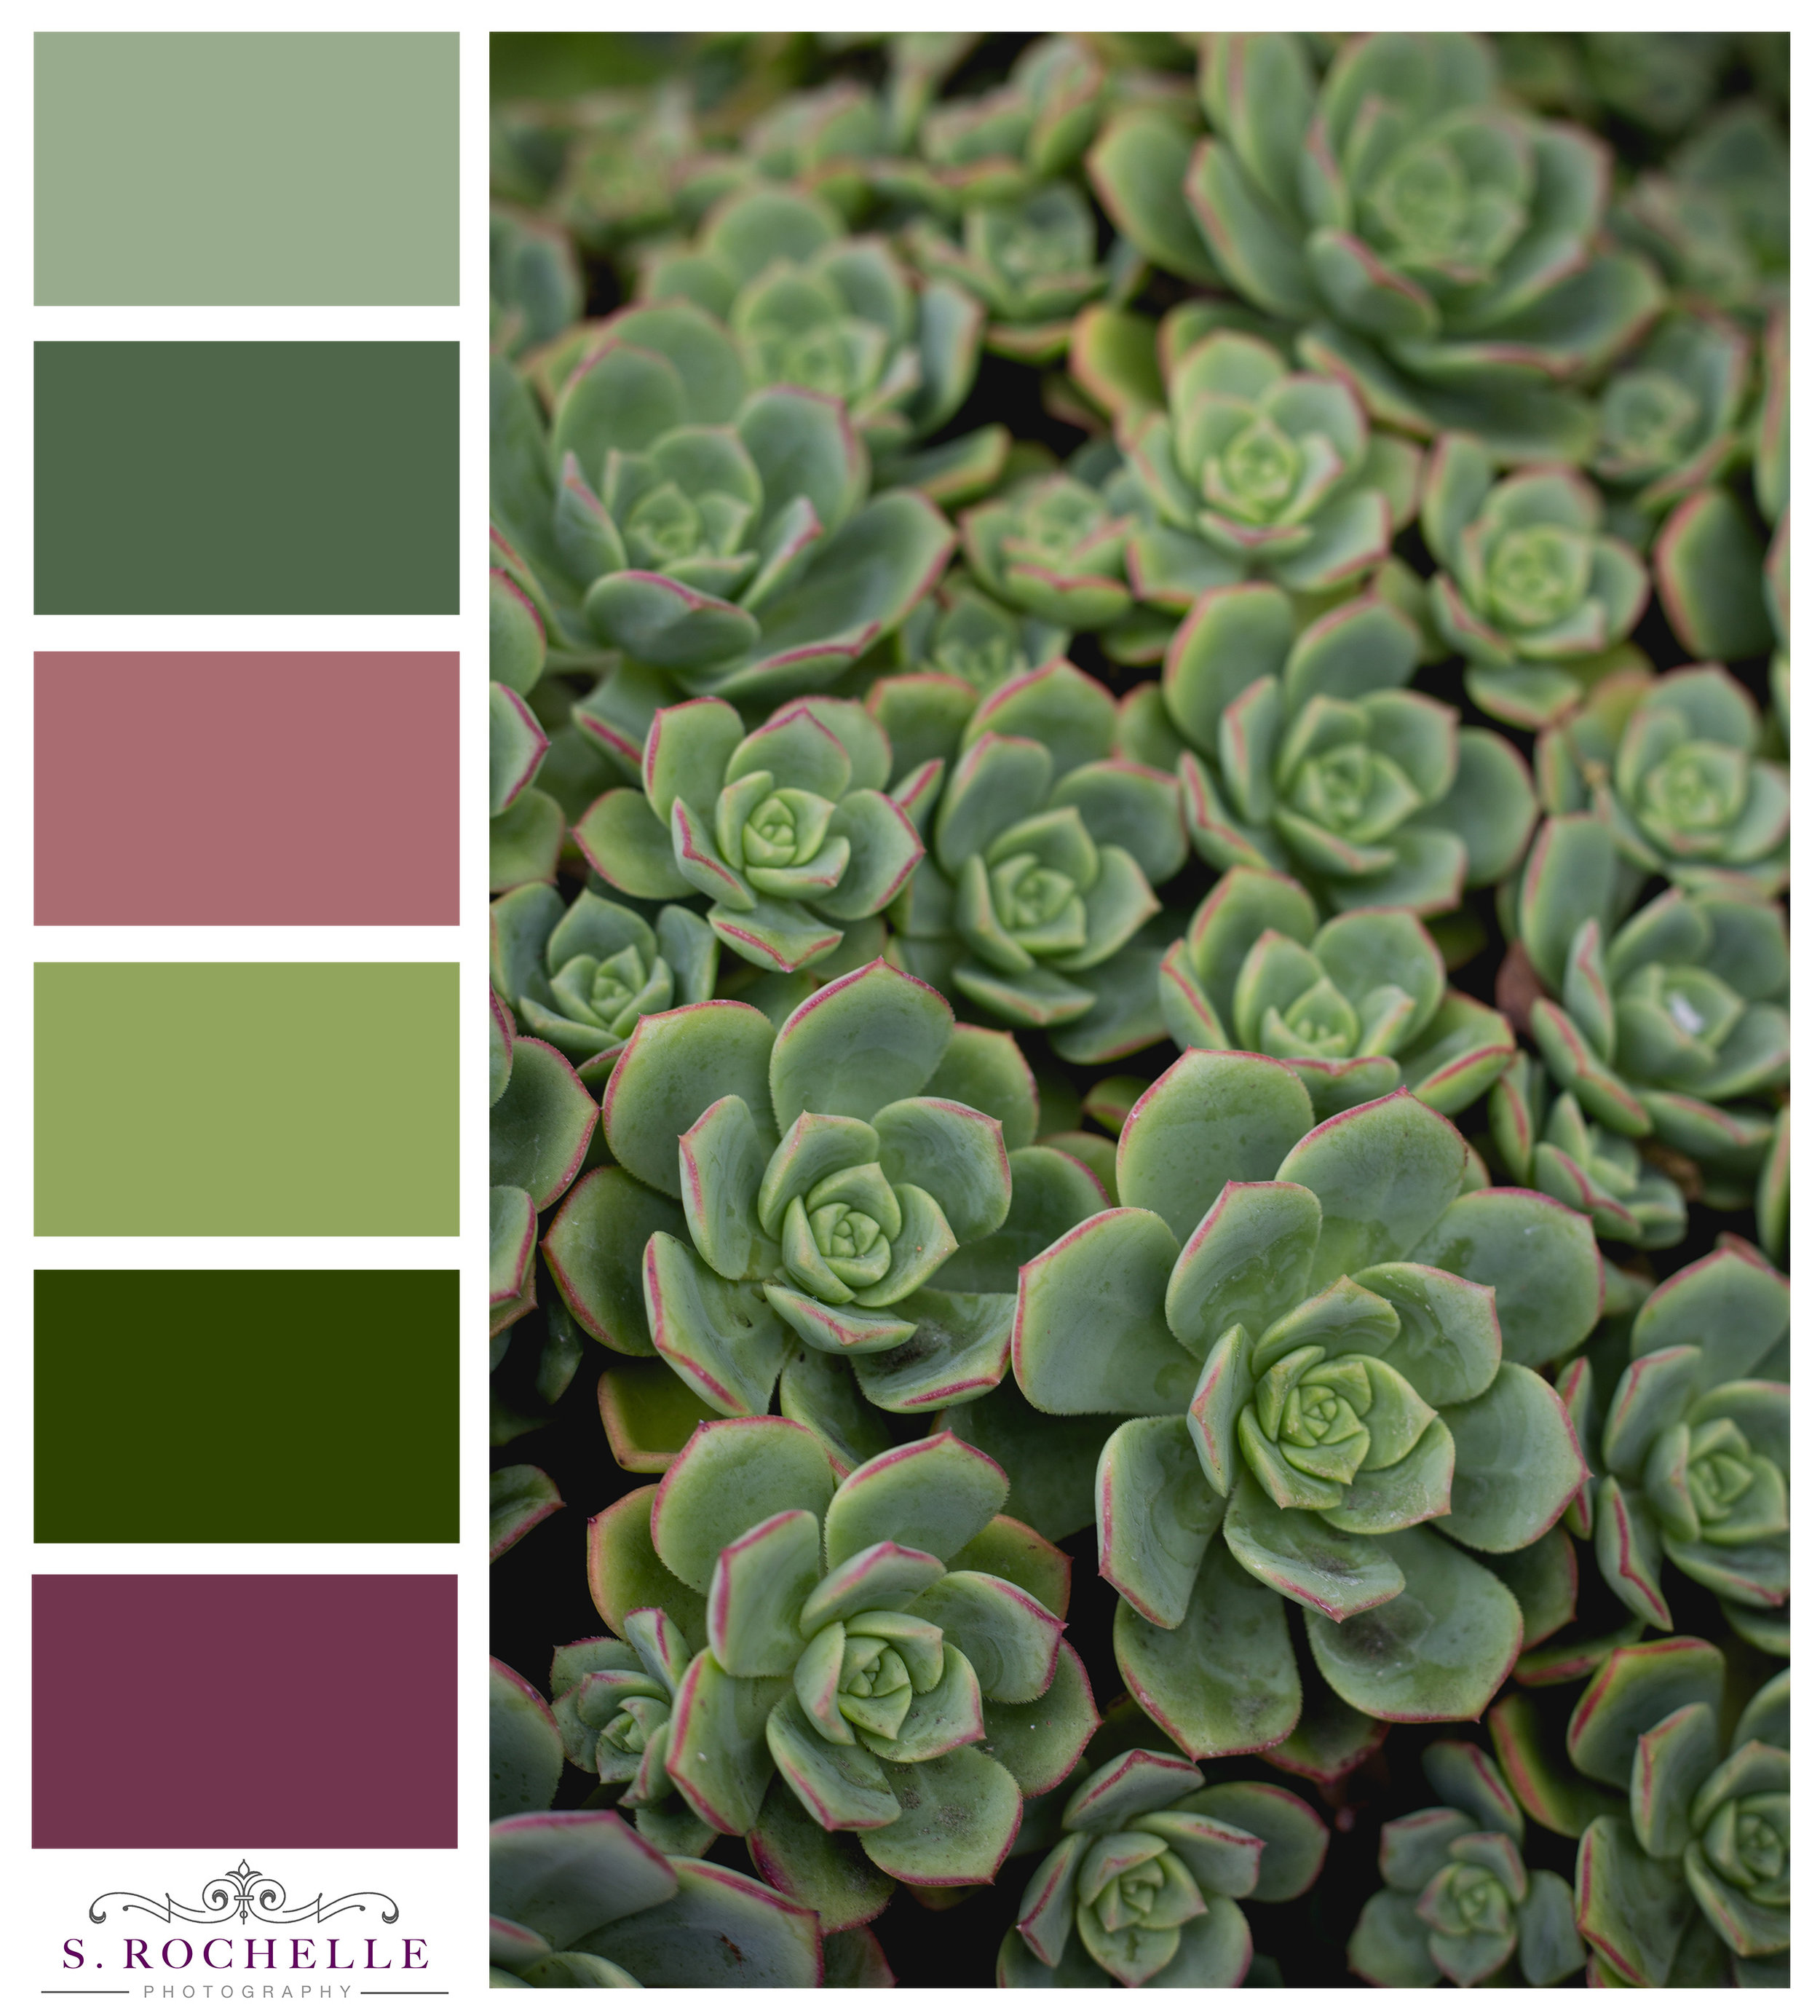 Succulent Detail S Rochelle Photography IMG_9111_ColorPalatte.jpg